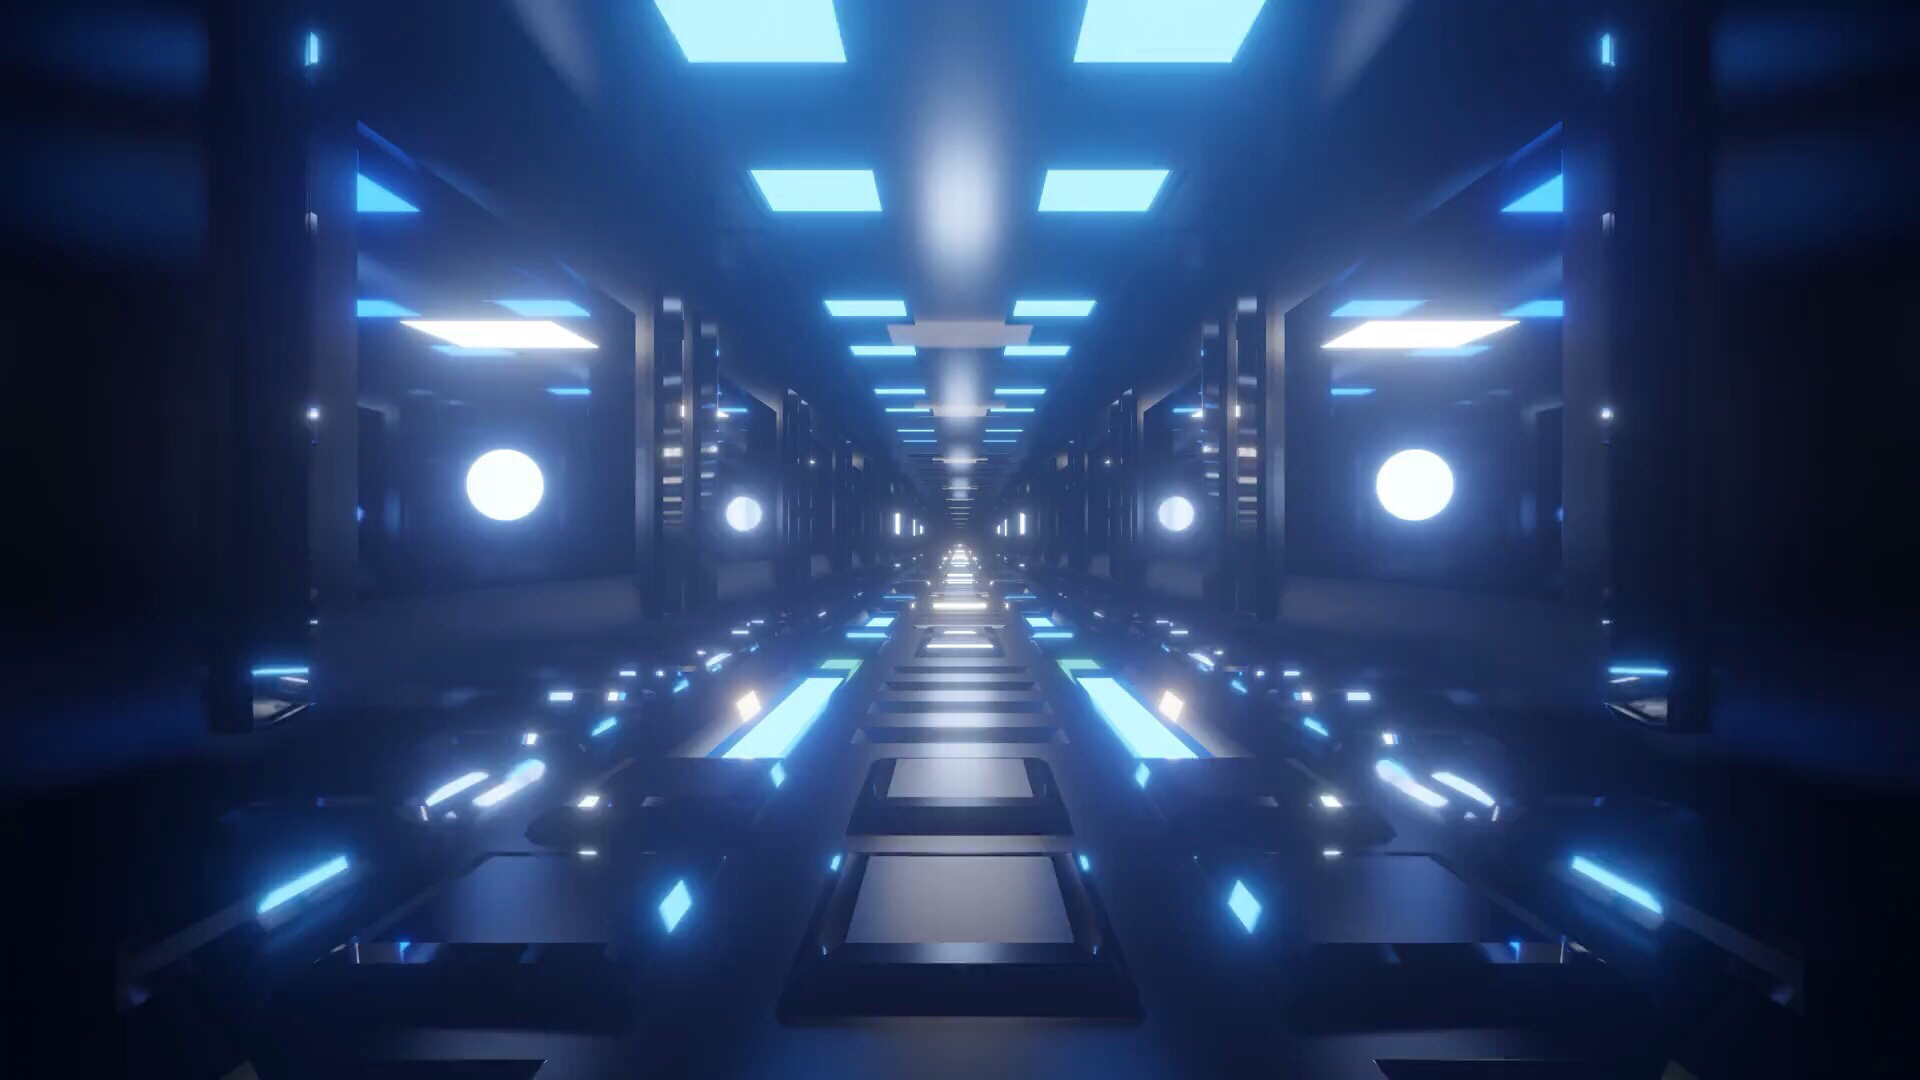 Free K Blue Tunnel Animation Seamless Looping Futuristic Live Wallpaper P Fps